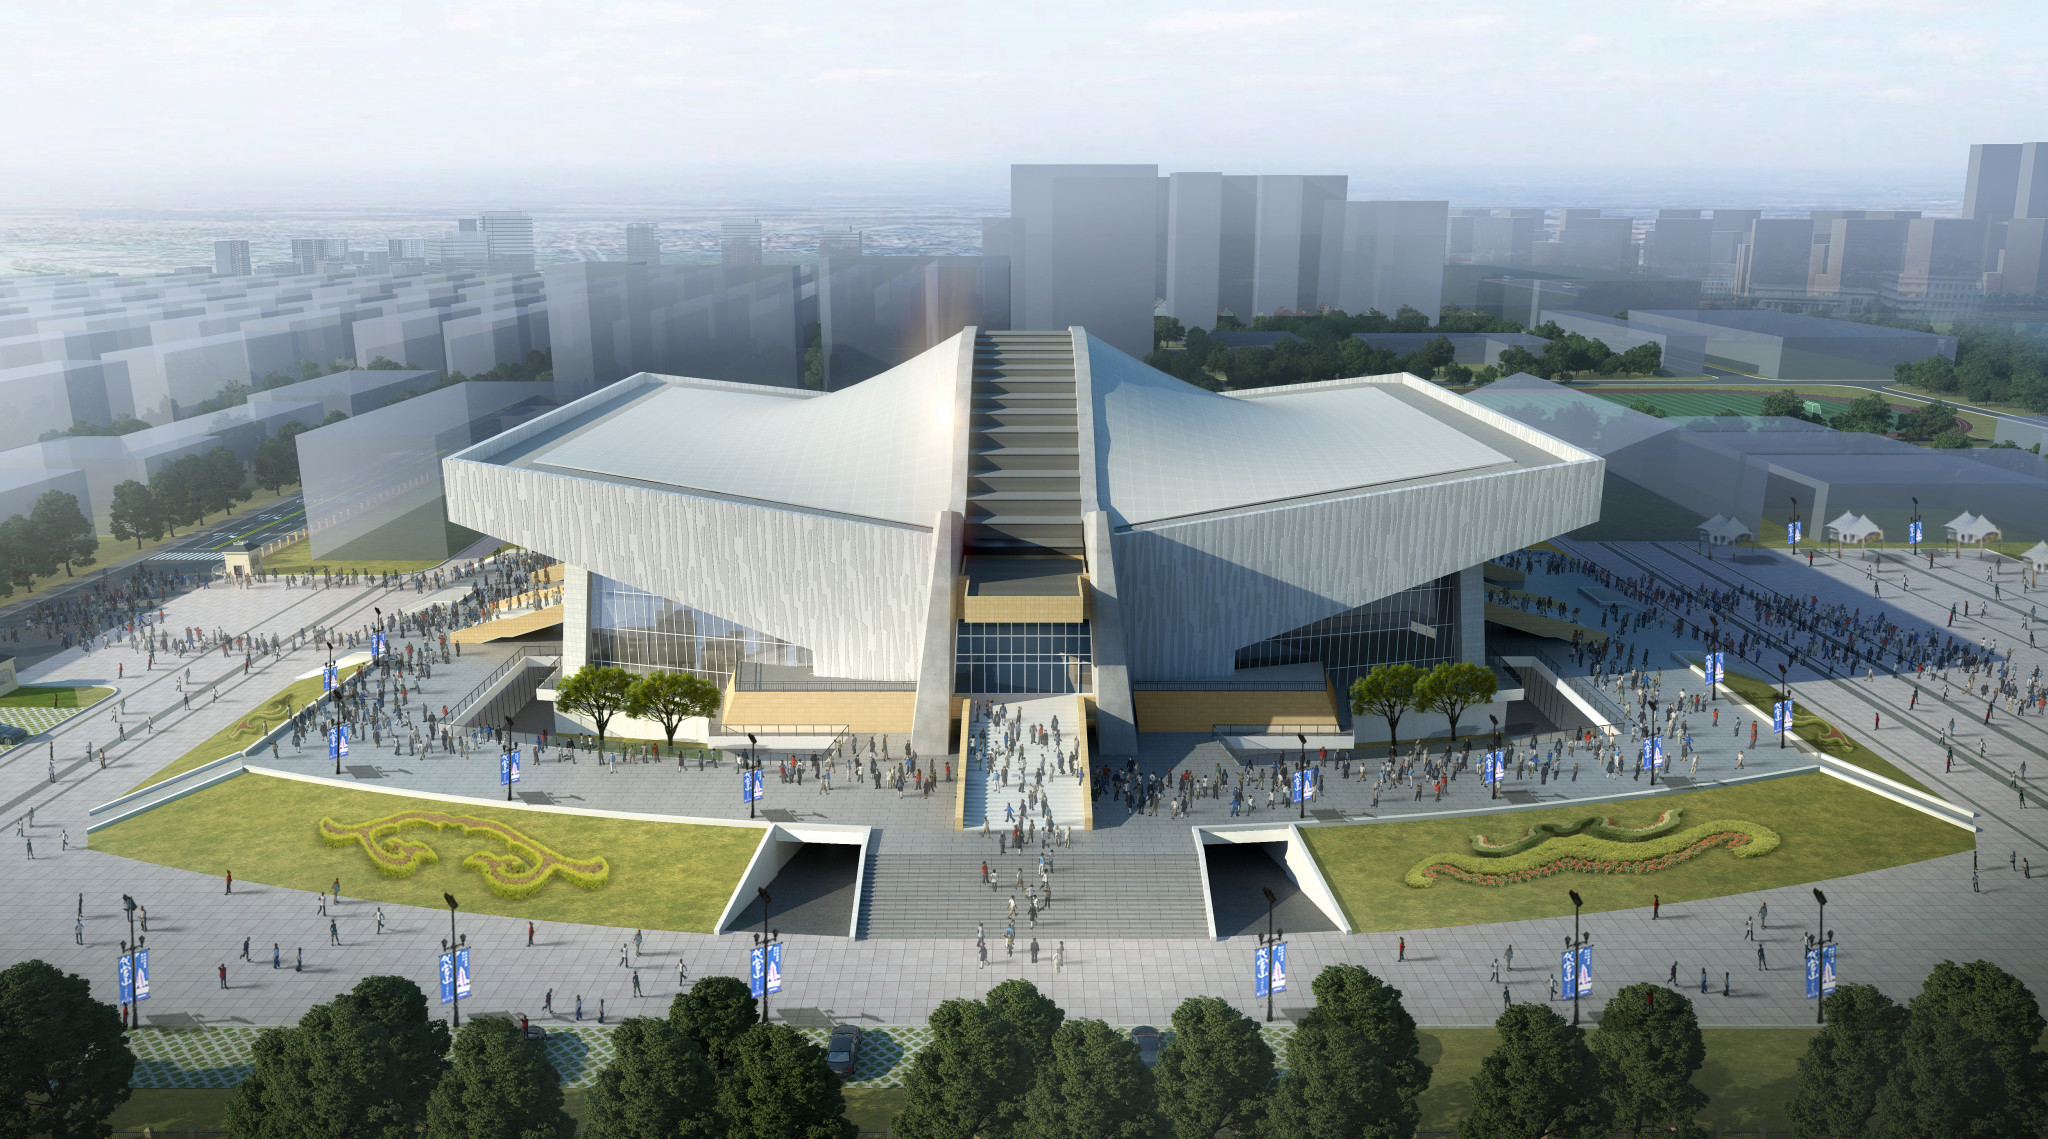 Several supporting rooms are going to be added to the Sichuan Gymnasium ©Chengdu 2021